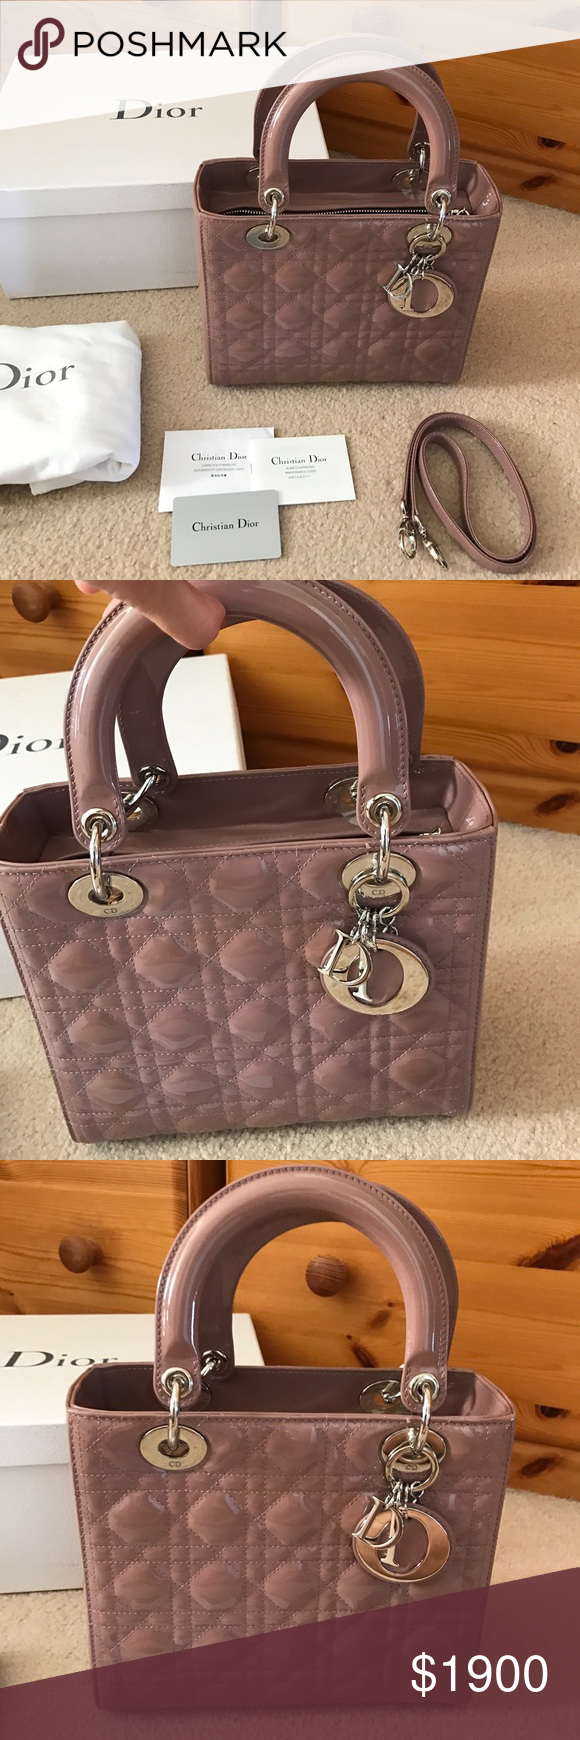 Dior Bag 100% Authentic Lady Dior. Cannage Patent Leather. Color  Pale  pinkish d77160fe191bd